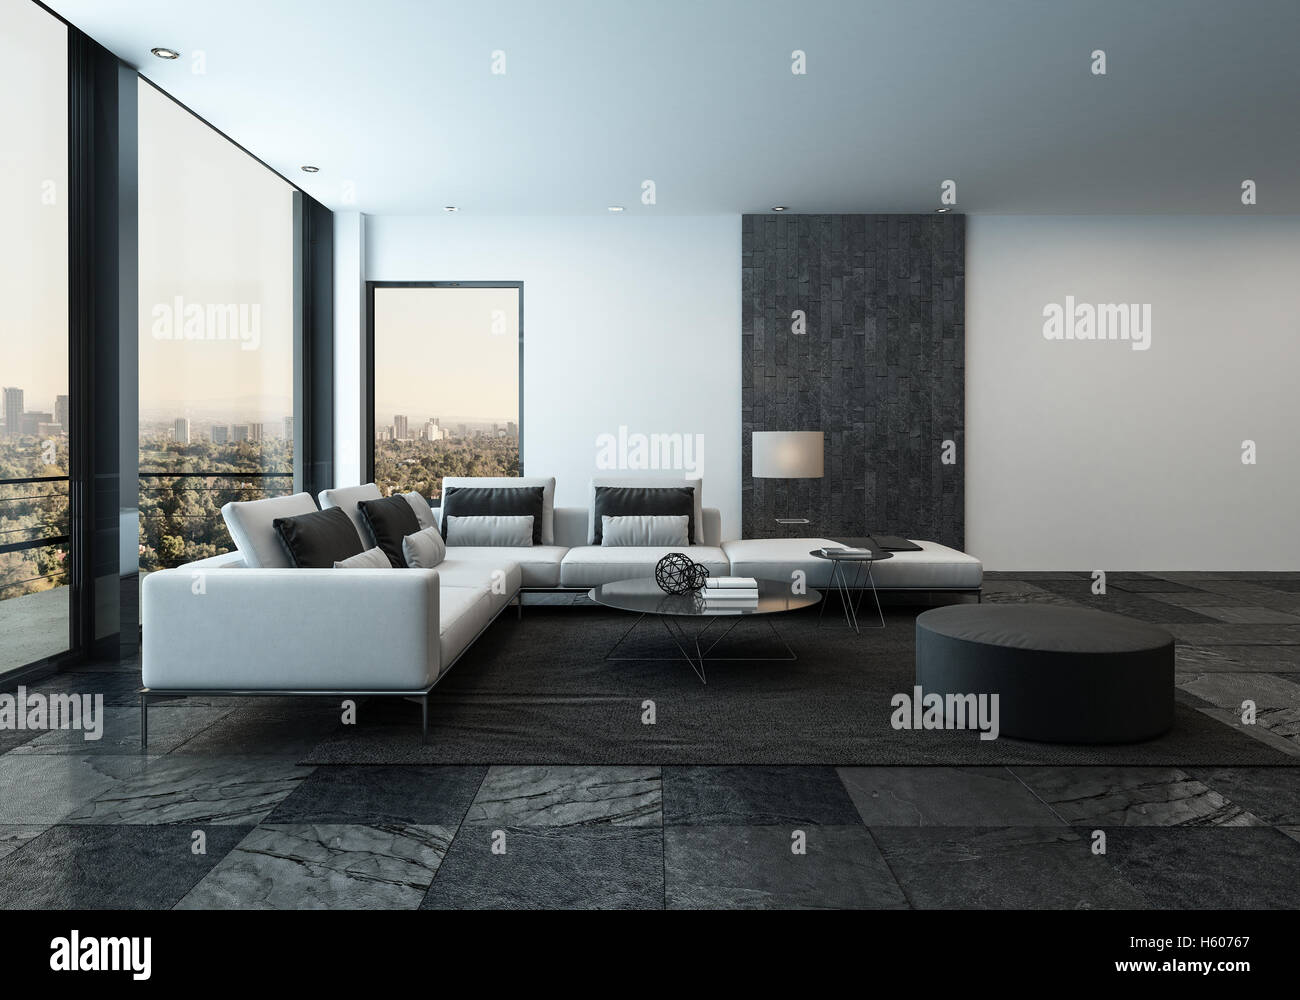 New Modern House Interior; 3D Rendering Of Spacious Minimalist Living Room  With Dark Stone Tiles And Windows Facing Urban City